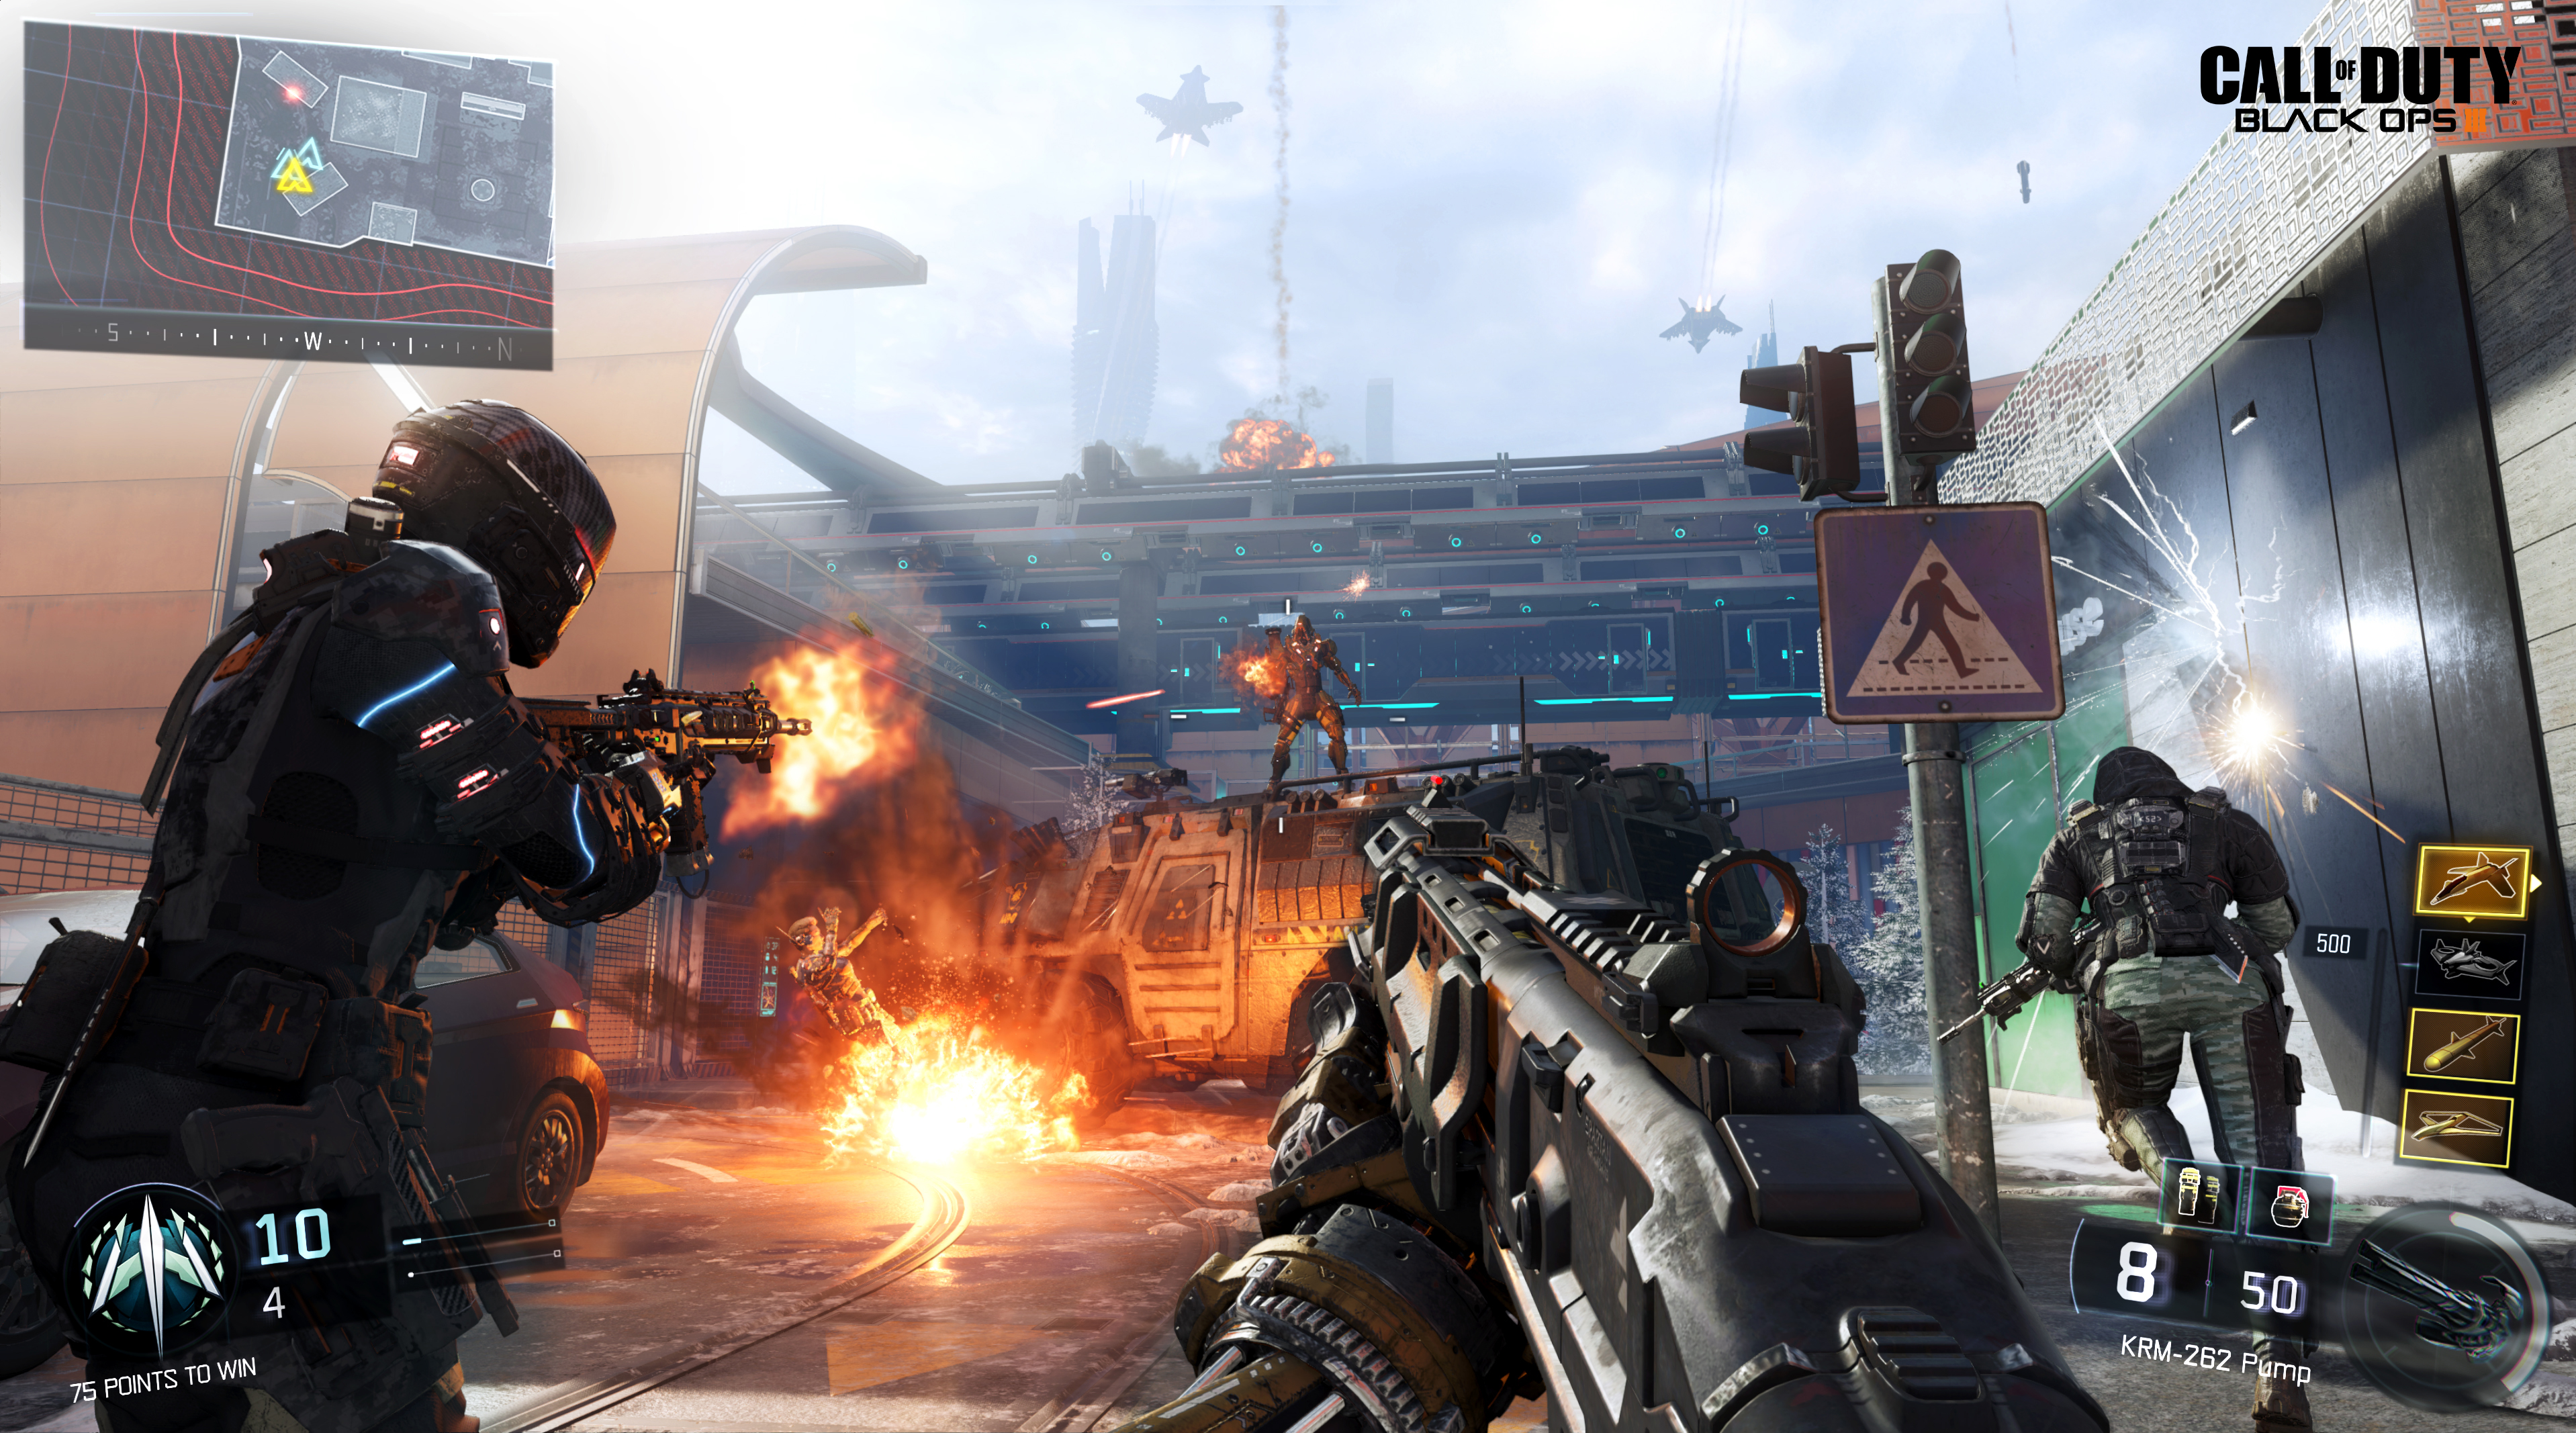 Call of Duty: Black Ops 3 Was the Top-Selling Game of 2015 ...